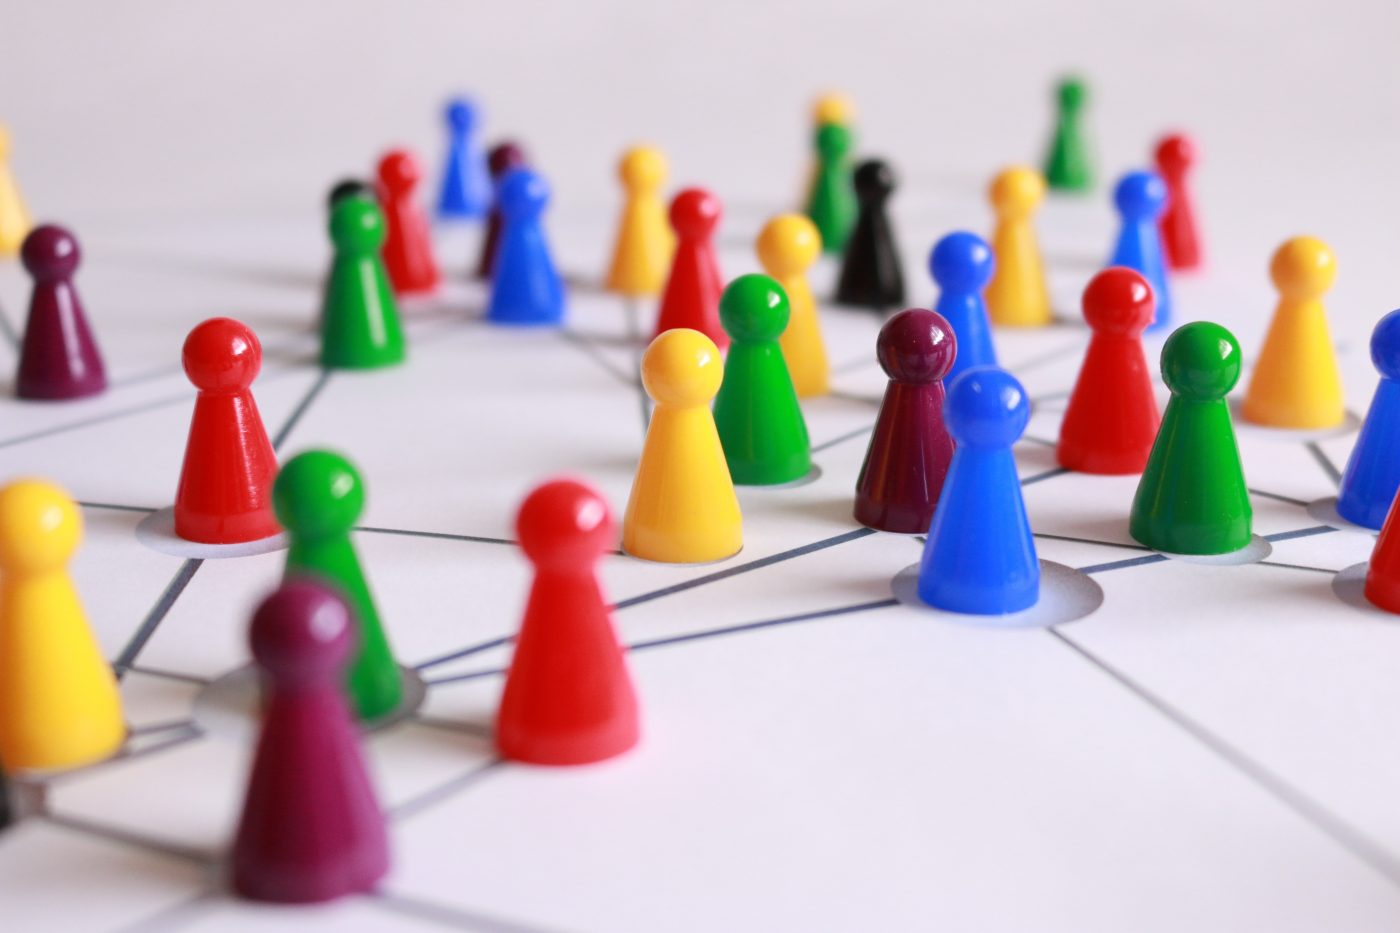 Several different colors of board game pieces connected by lines on paper